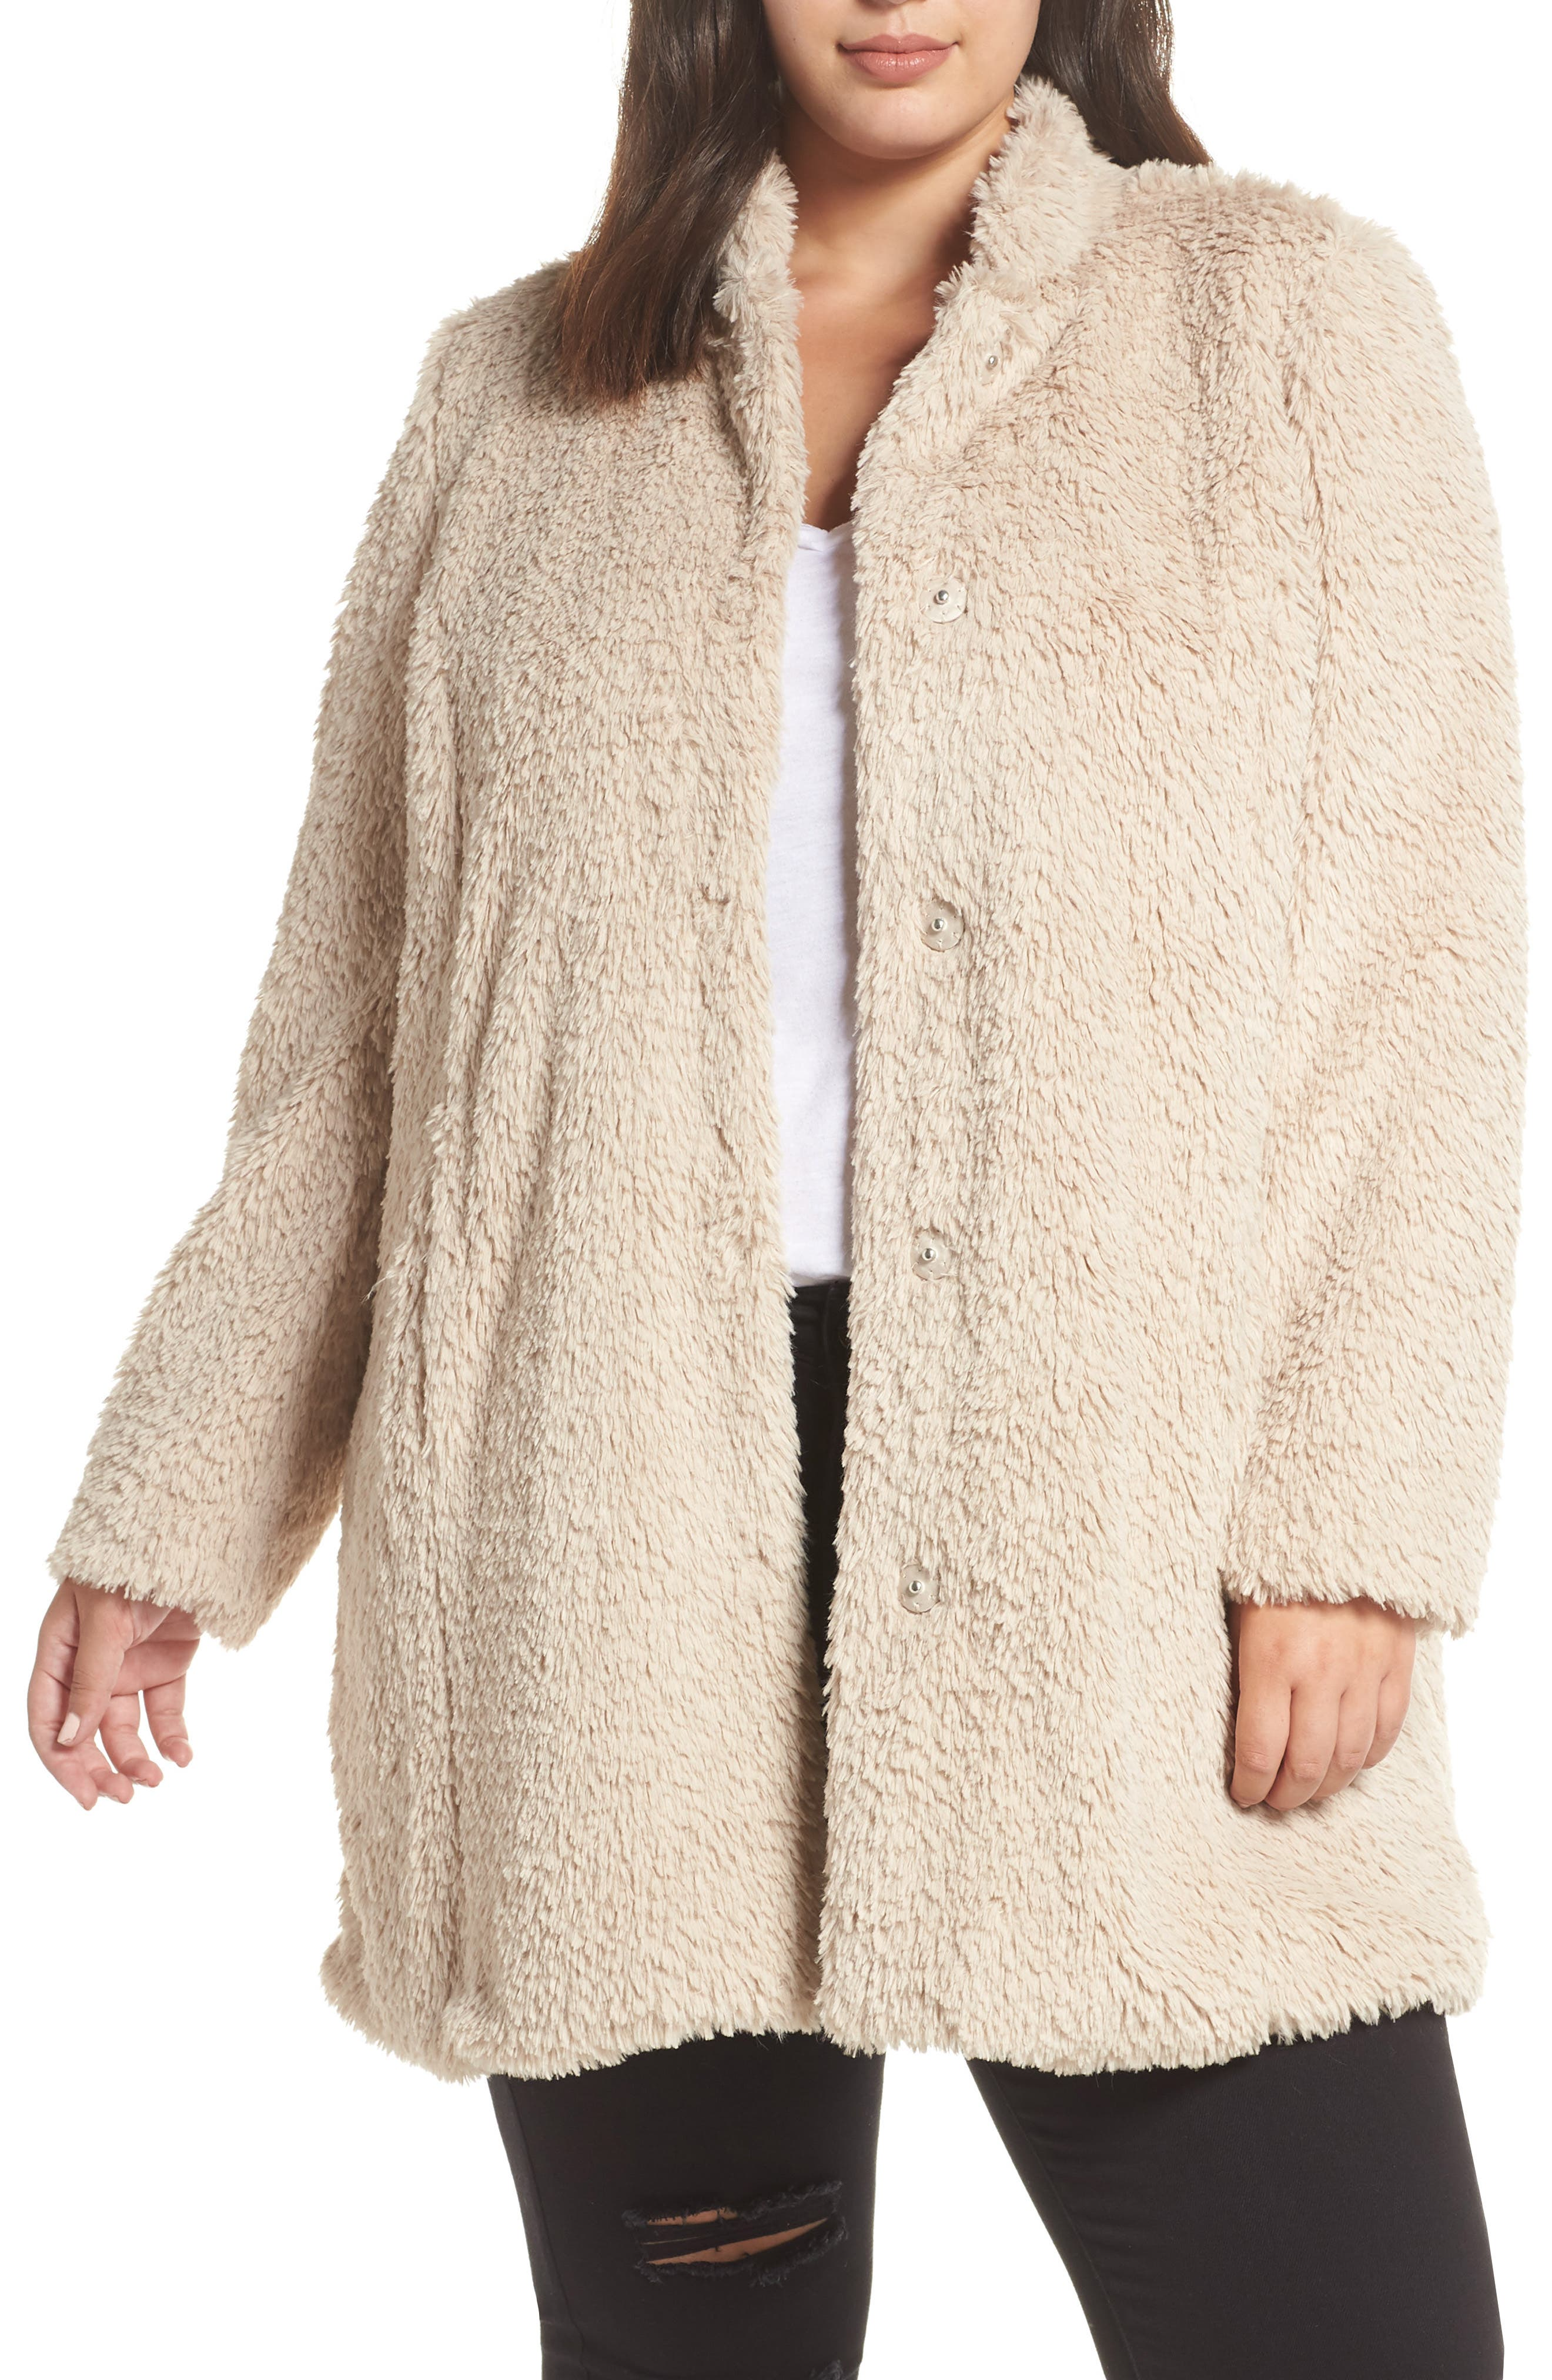 1940s Style Coats and Jackets for Sale Plus Size Womens Kenneth Cole New York Original Teddy Faux Fur Coat $109.90 AT vintagedancer.com